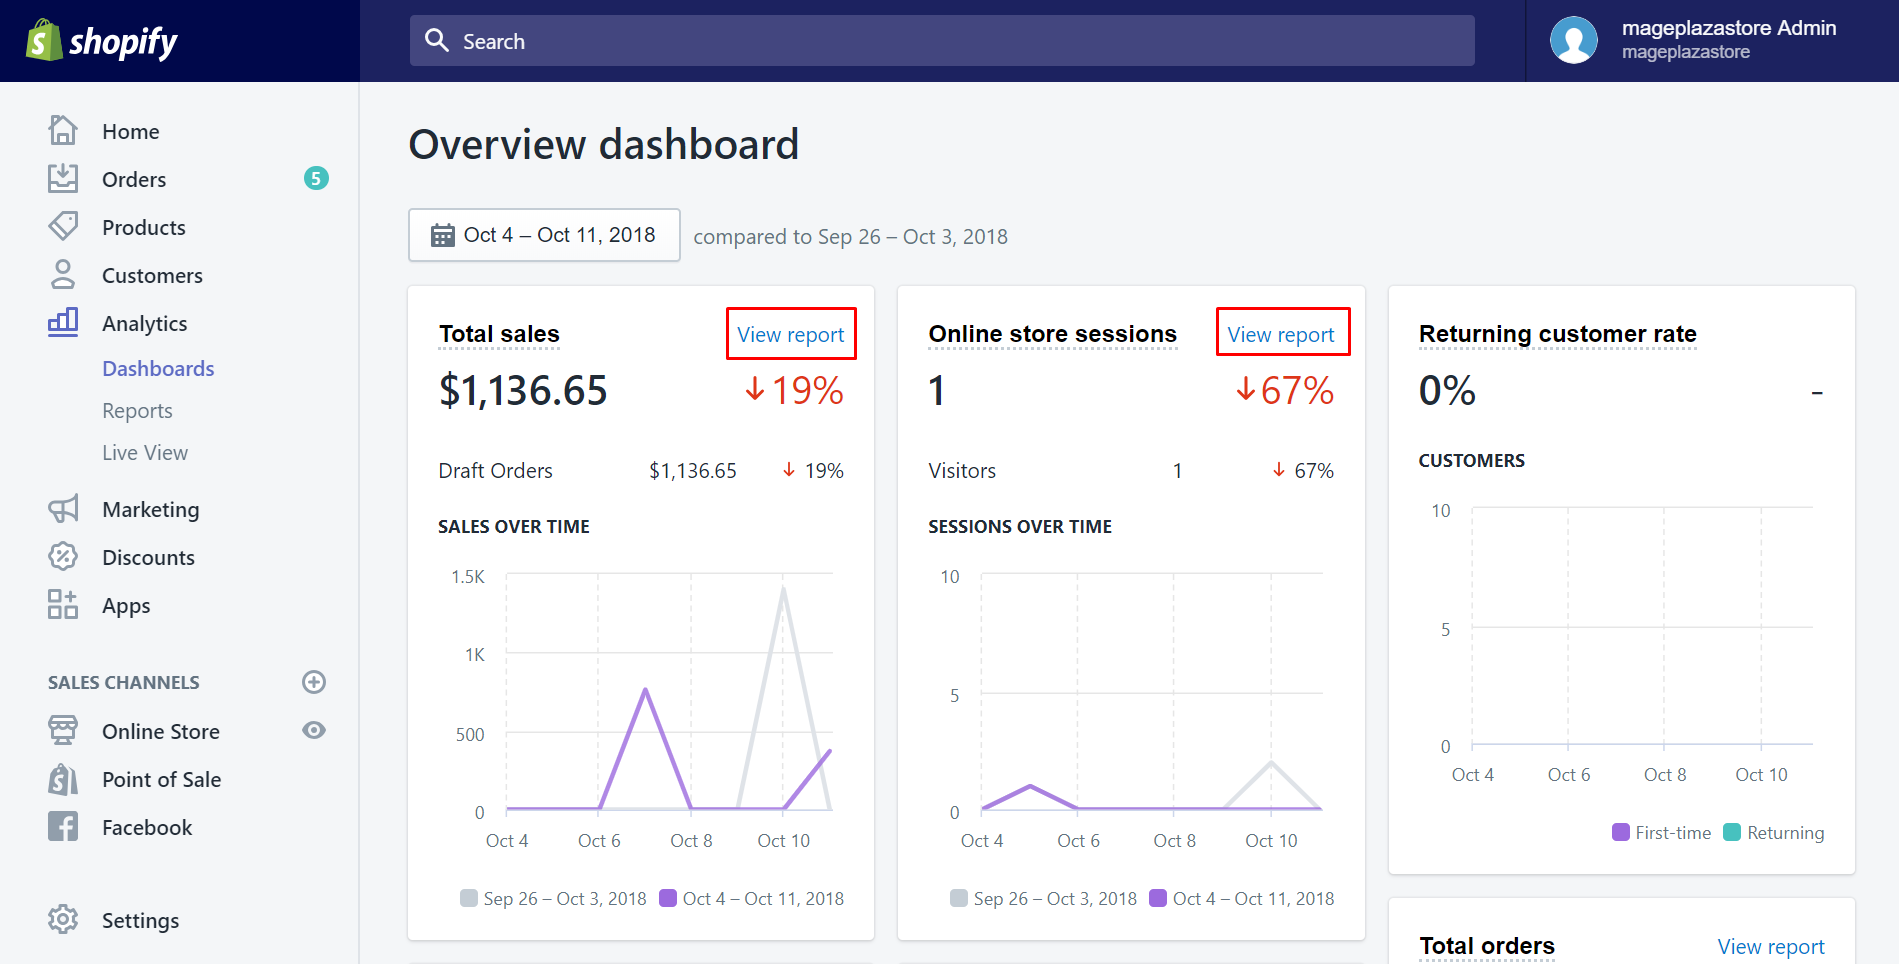 how to view the overview dashboard